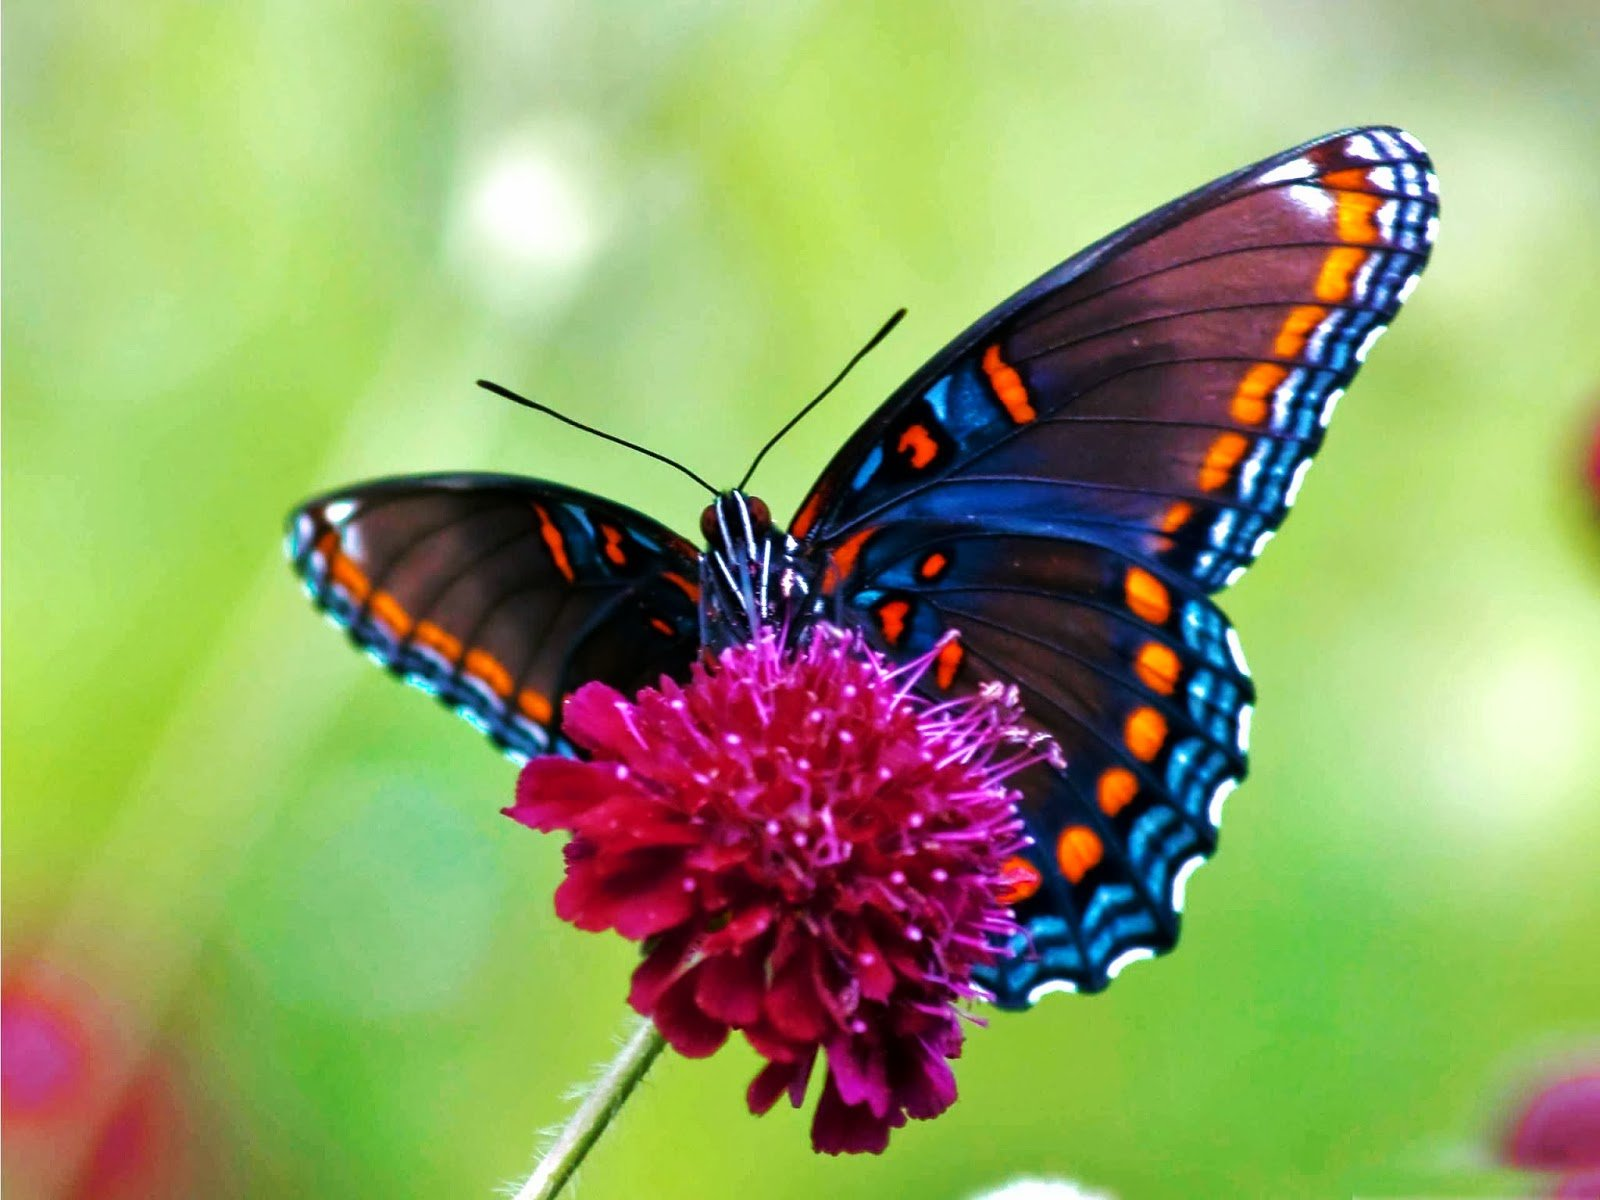 live butterfly wallpaper   beautiful desktop wallpapers 2014 1600x1200